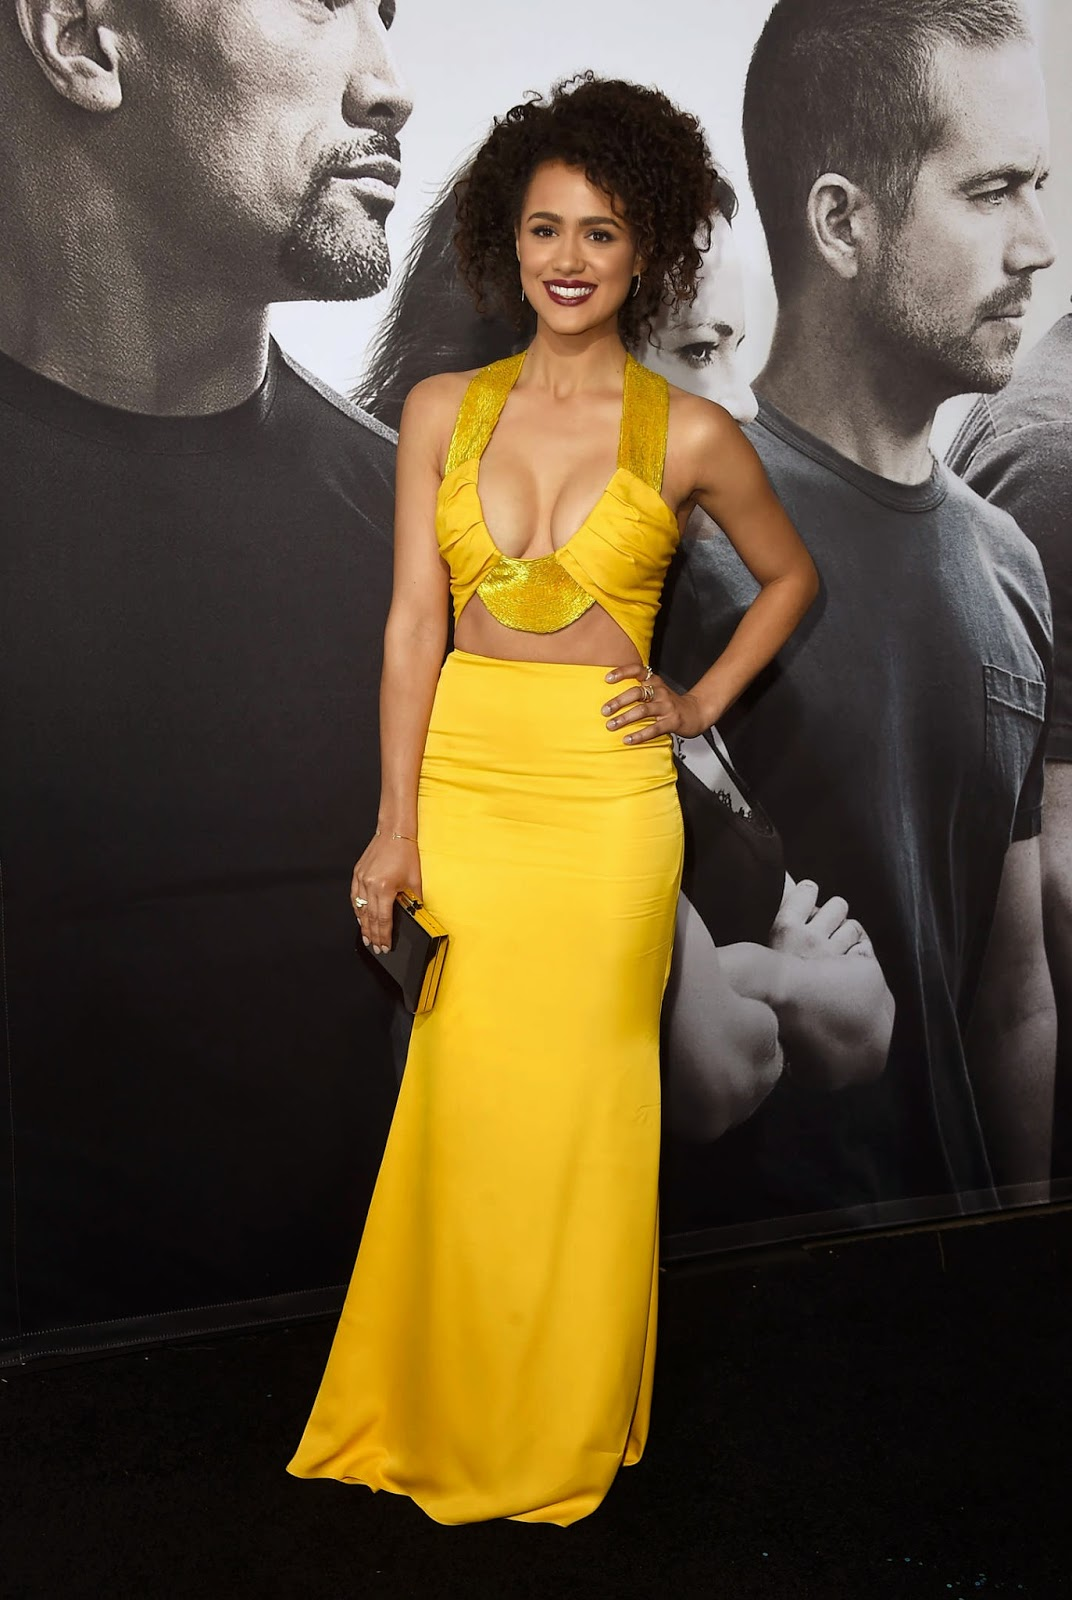 Nathalie Emmanuel bares cleavage at the 'Furious 7' premiere in LA